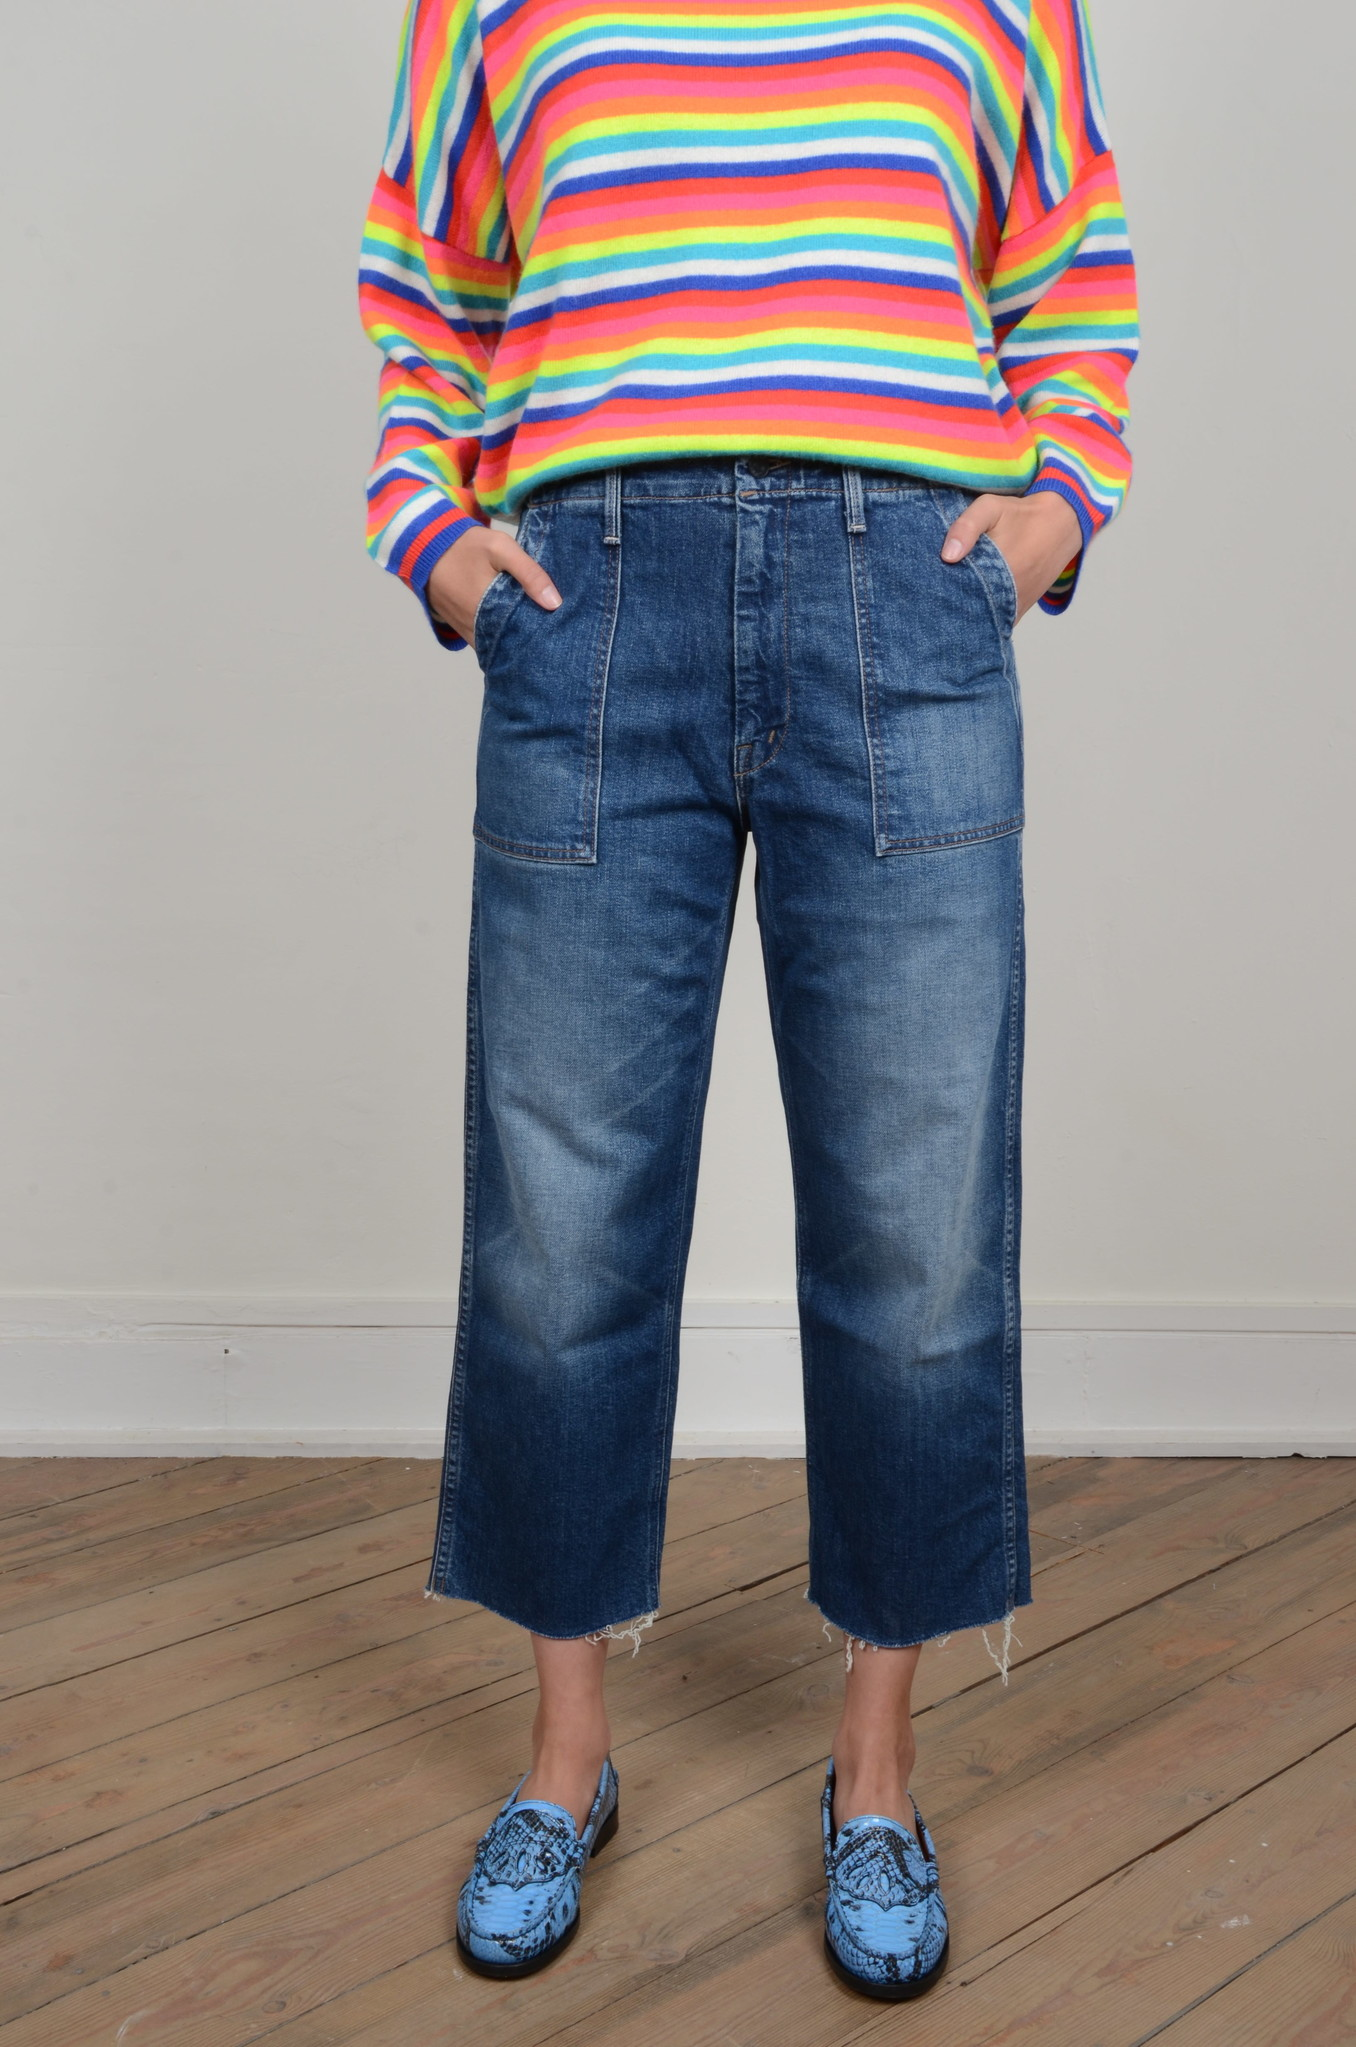 THE PATCH POCKET ZIP PRIVATE ANKLE FRAY-1